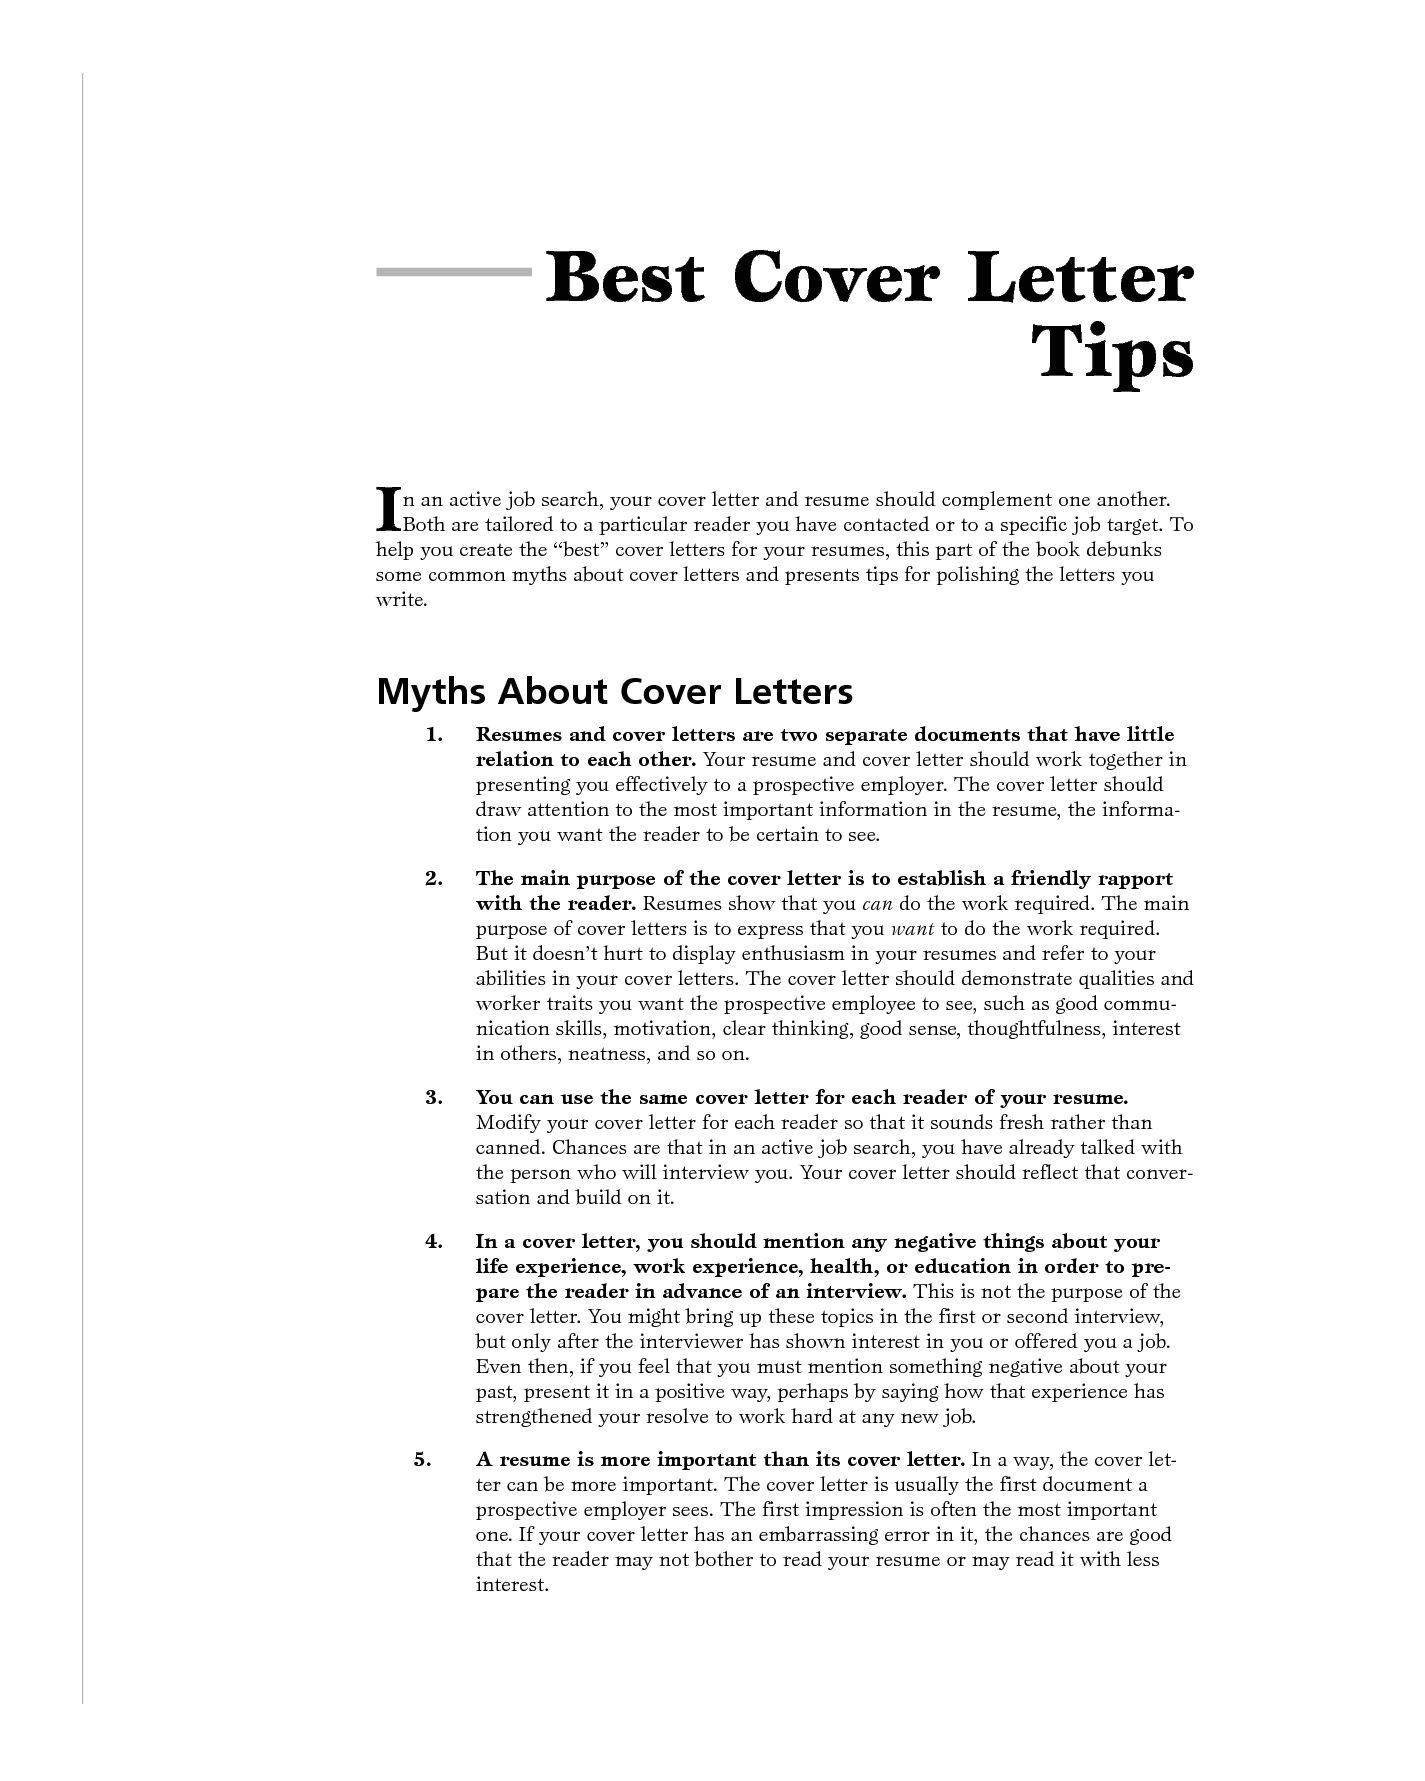 The Importance Of Cover Letters Importance Of Writing Cover Letter and Resume